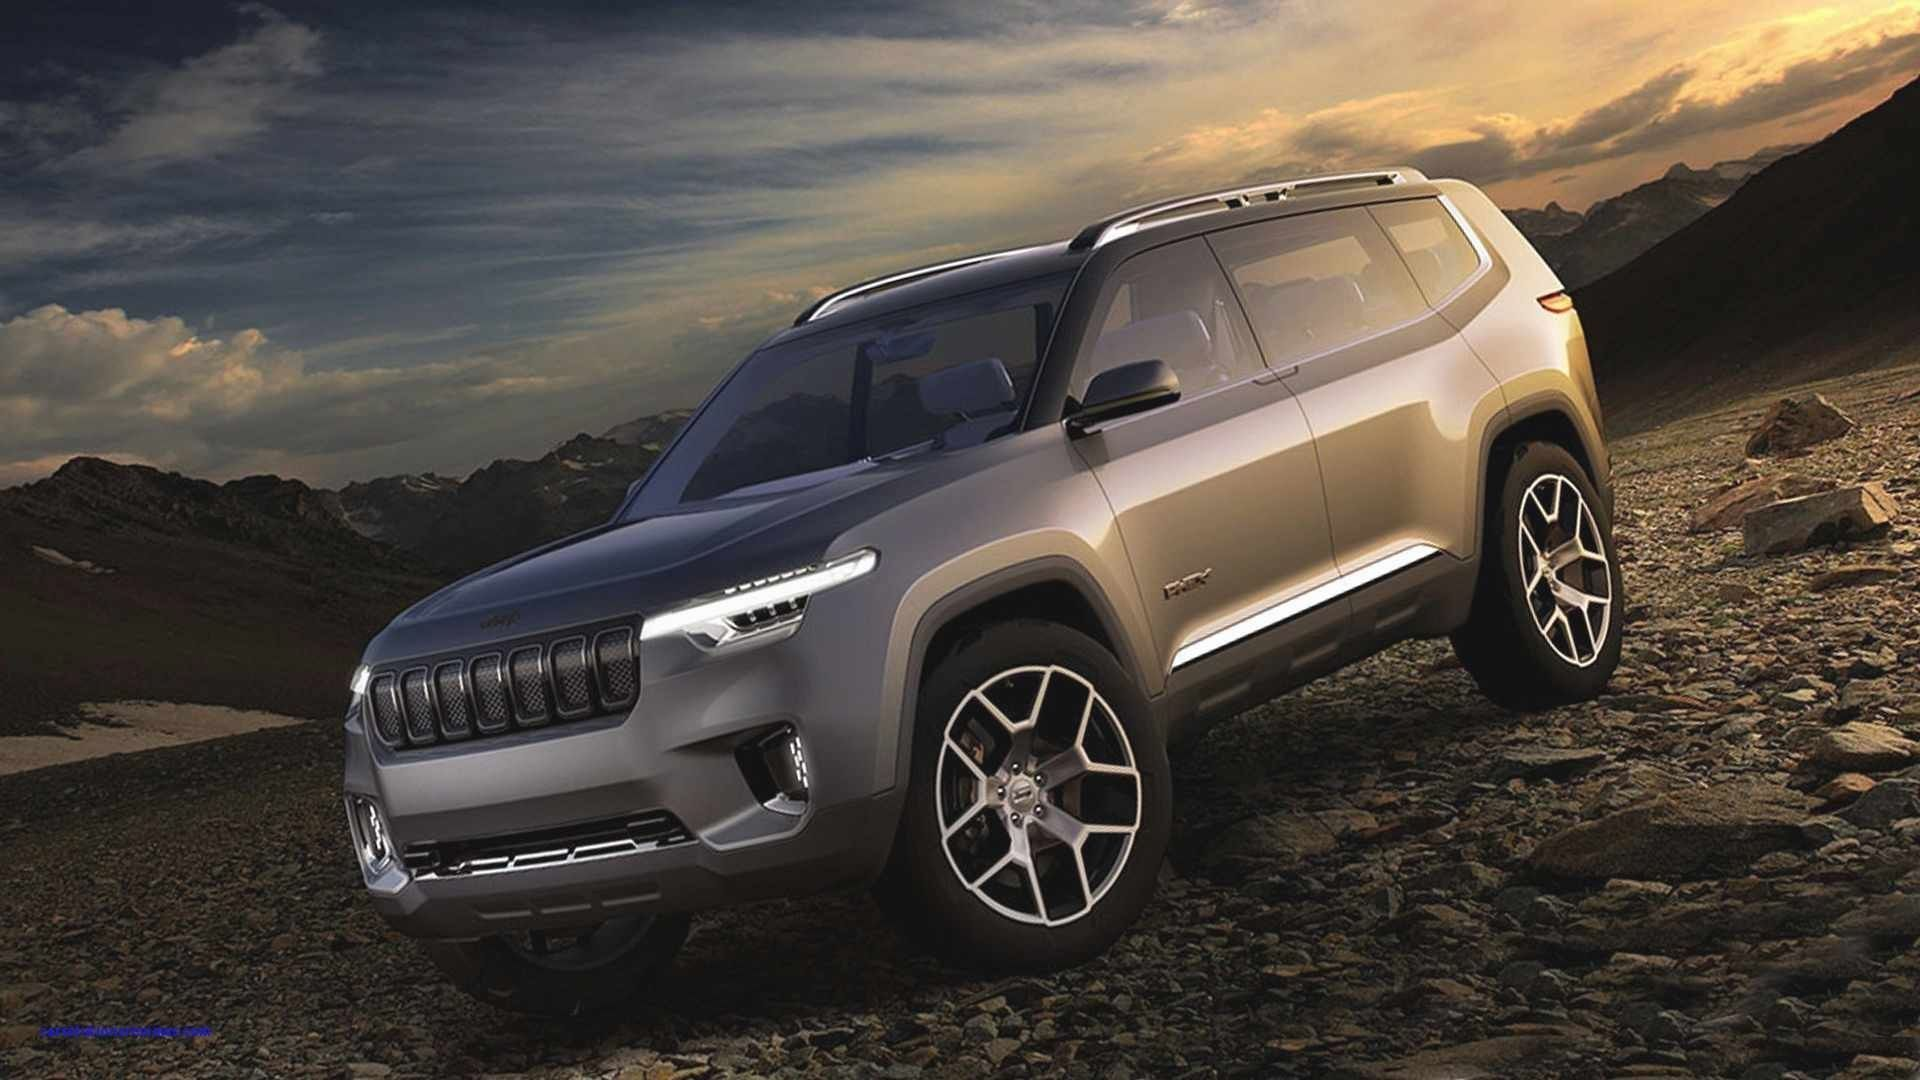 New 2020 Jeep Jeepster Specs and Review Jeep wagoneer